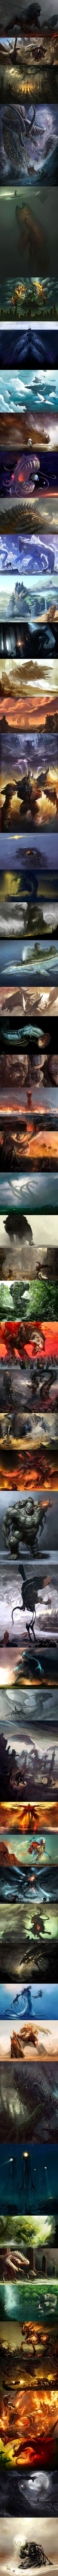 Godlike creatures in a collection.: